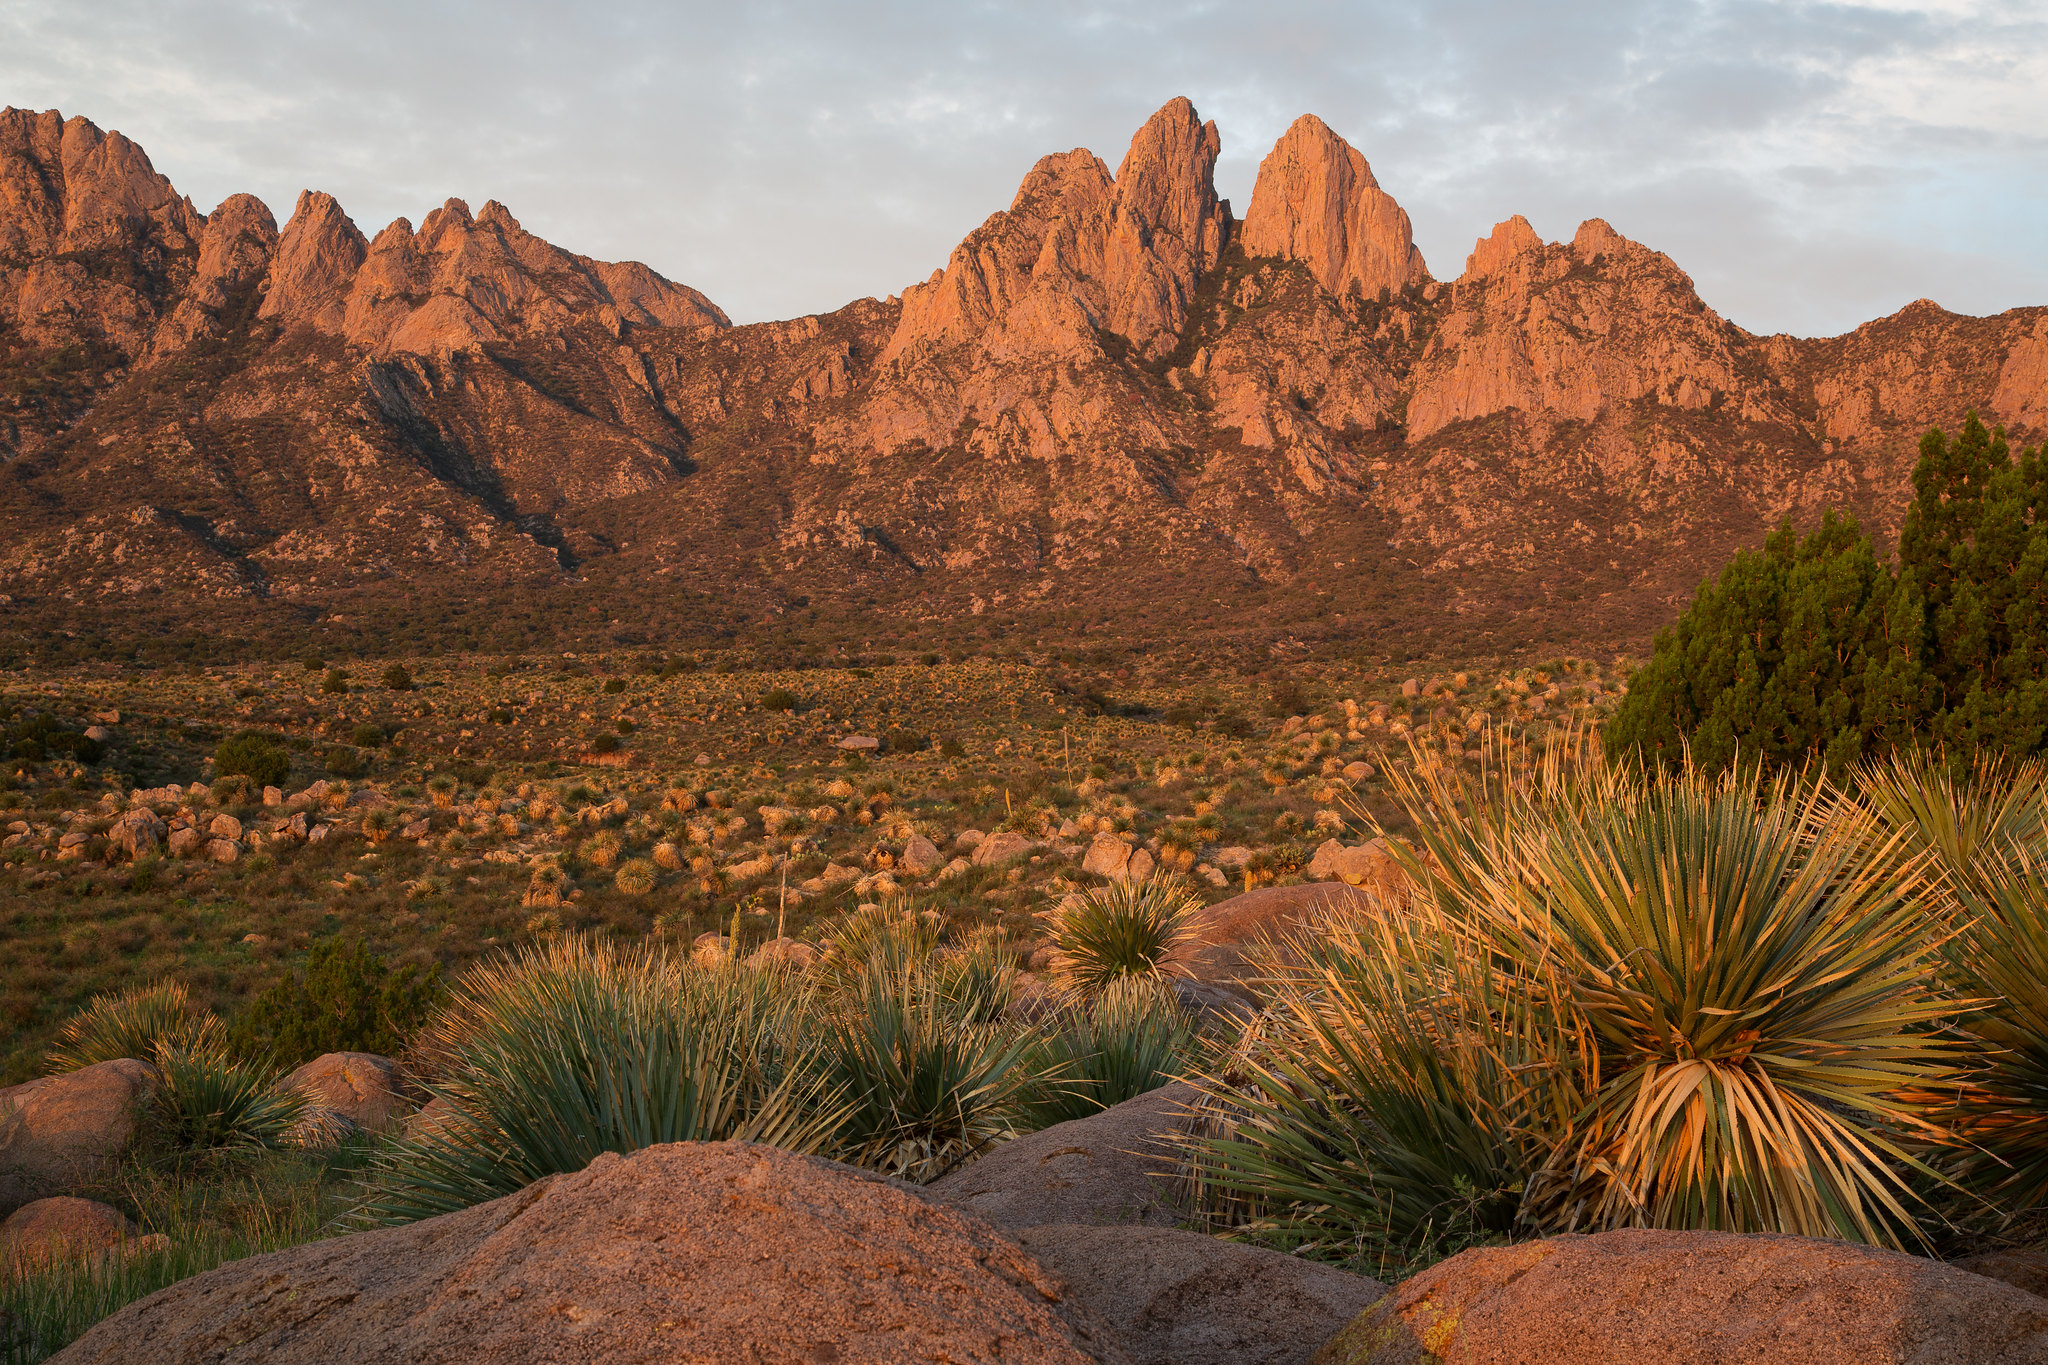 Sunset over the Organ Mountains near Las Cruces, New Mexico.